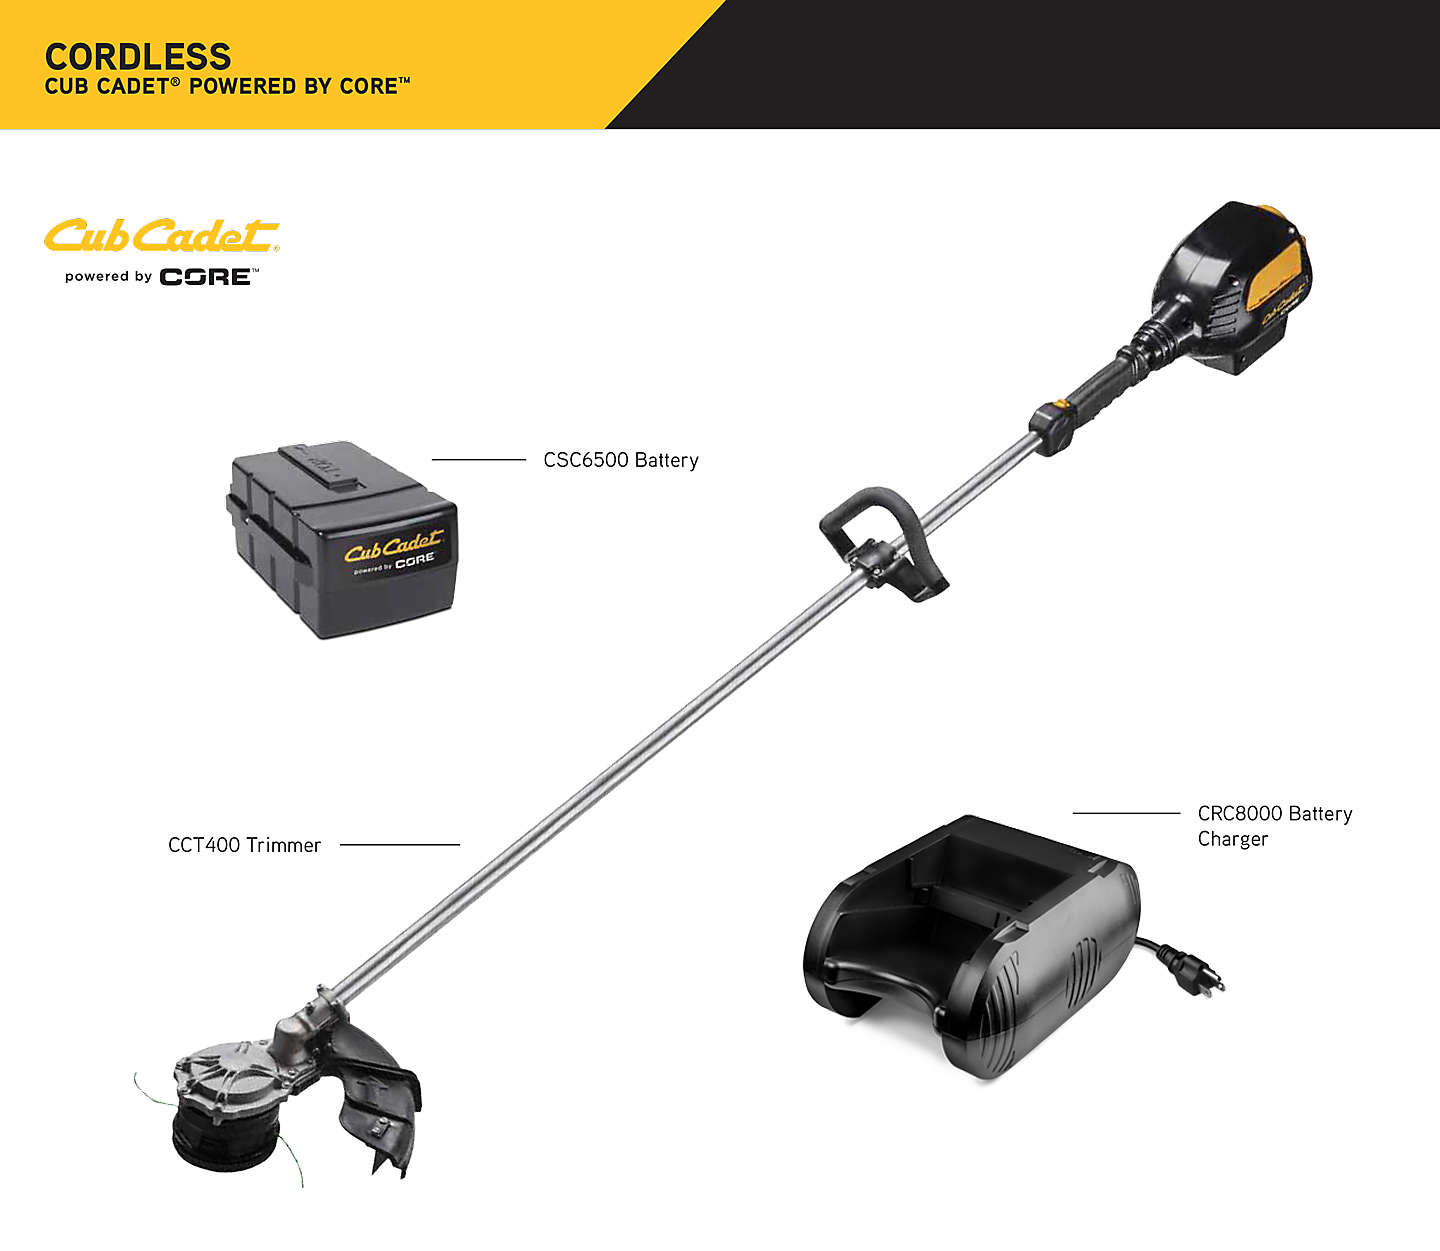 Cub Cadet powered by CORE trimmer kit - Tractor Supply Co.